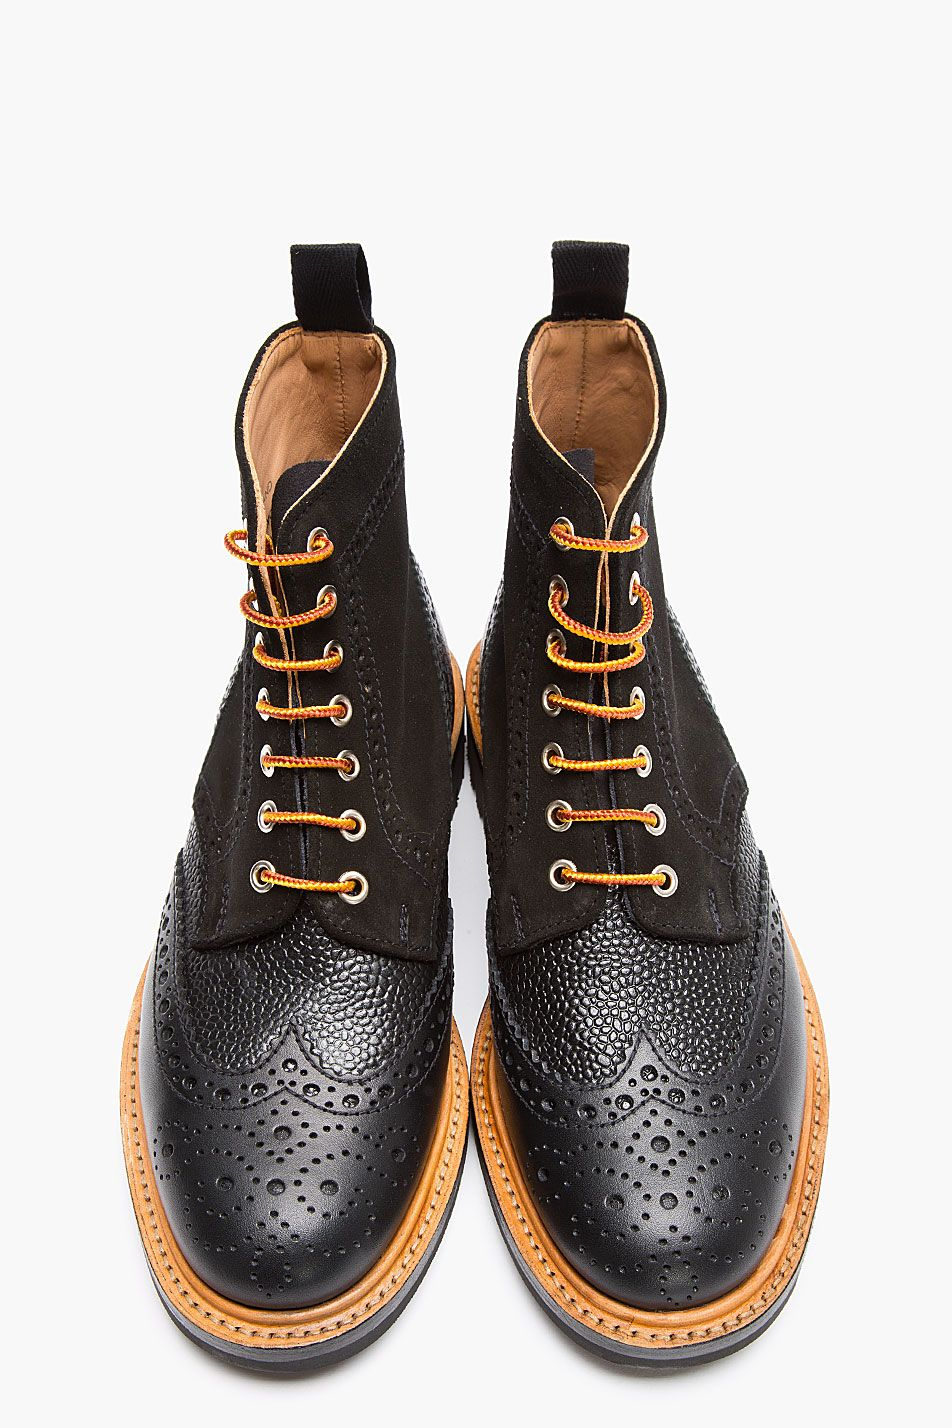 Designer Wingtip Boots for Men